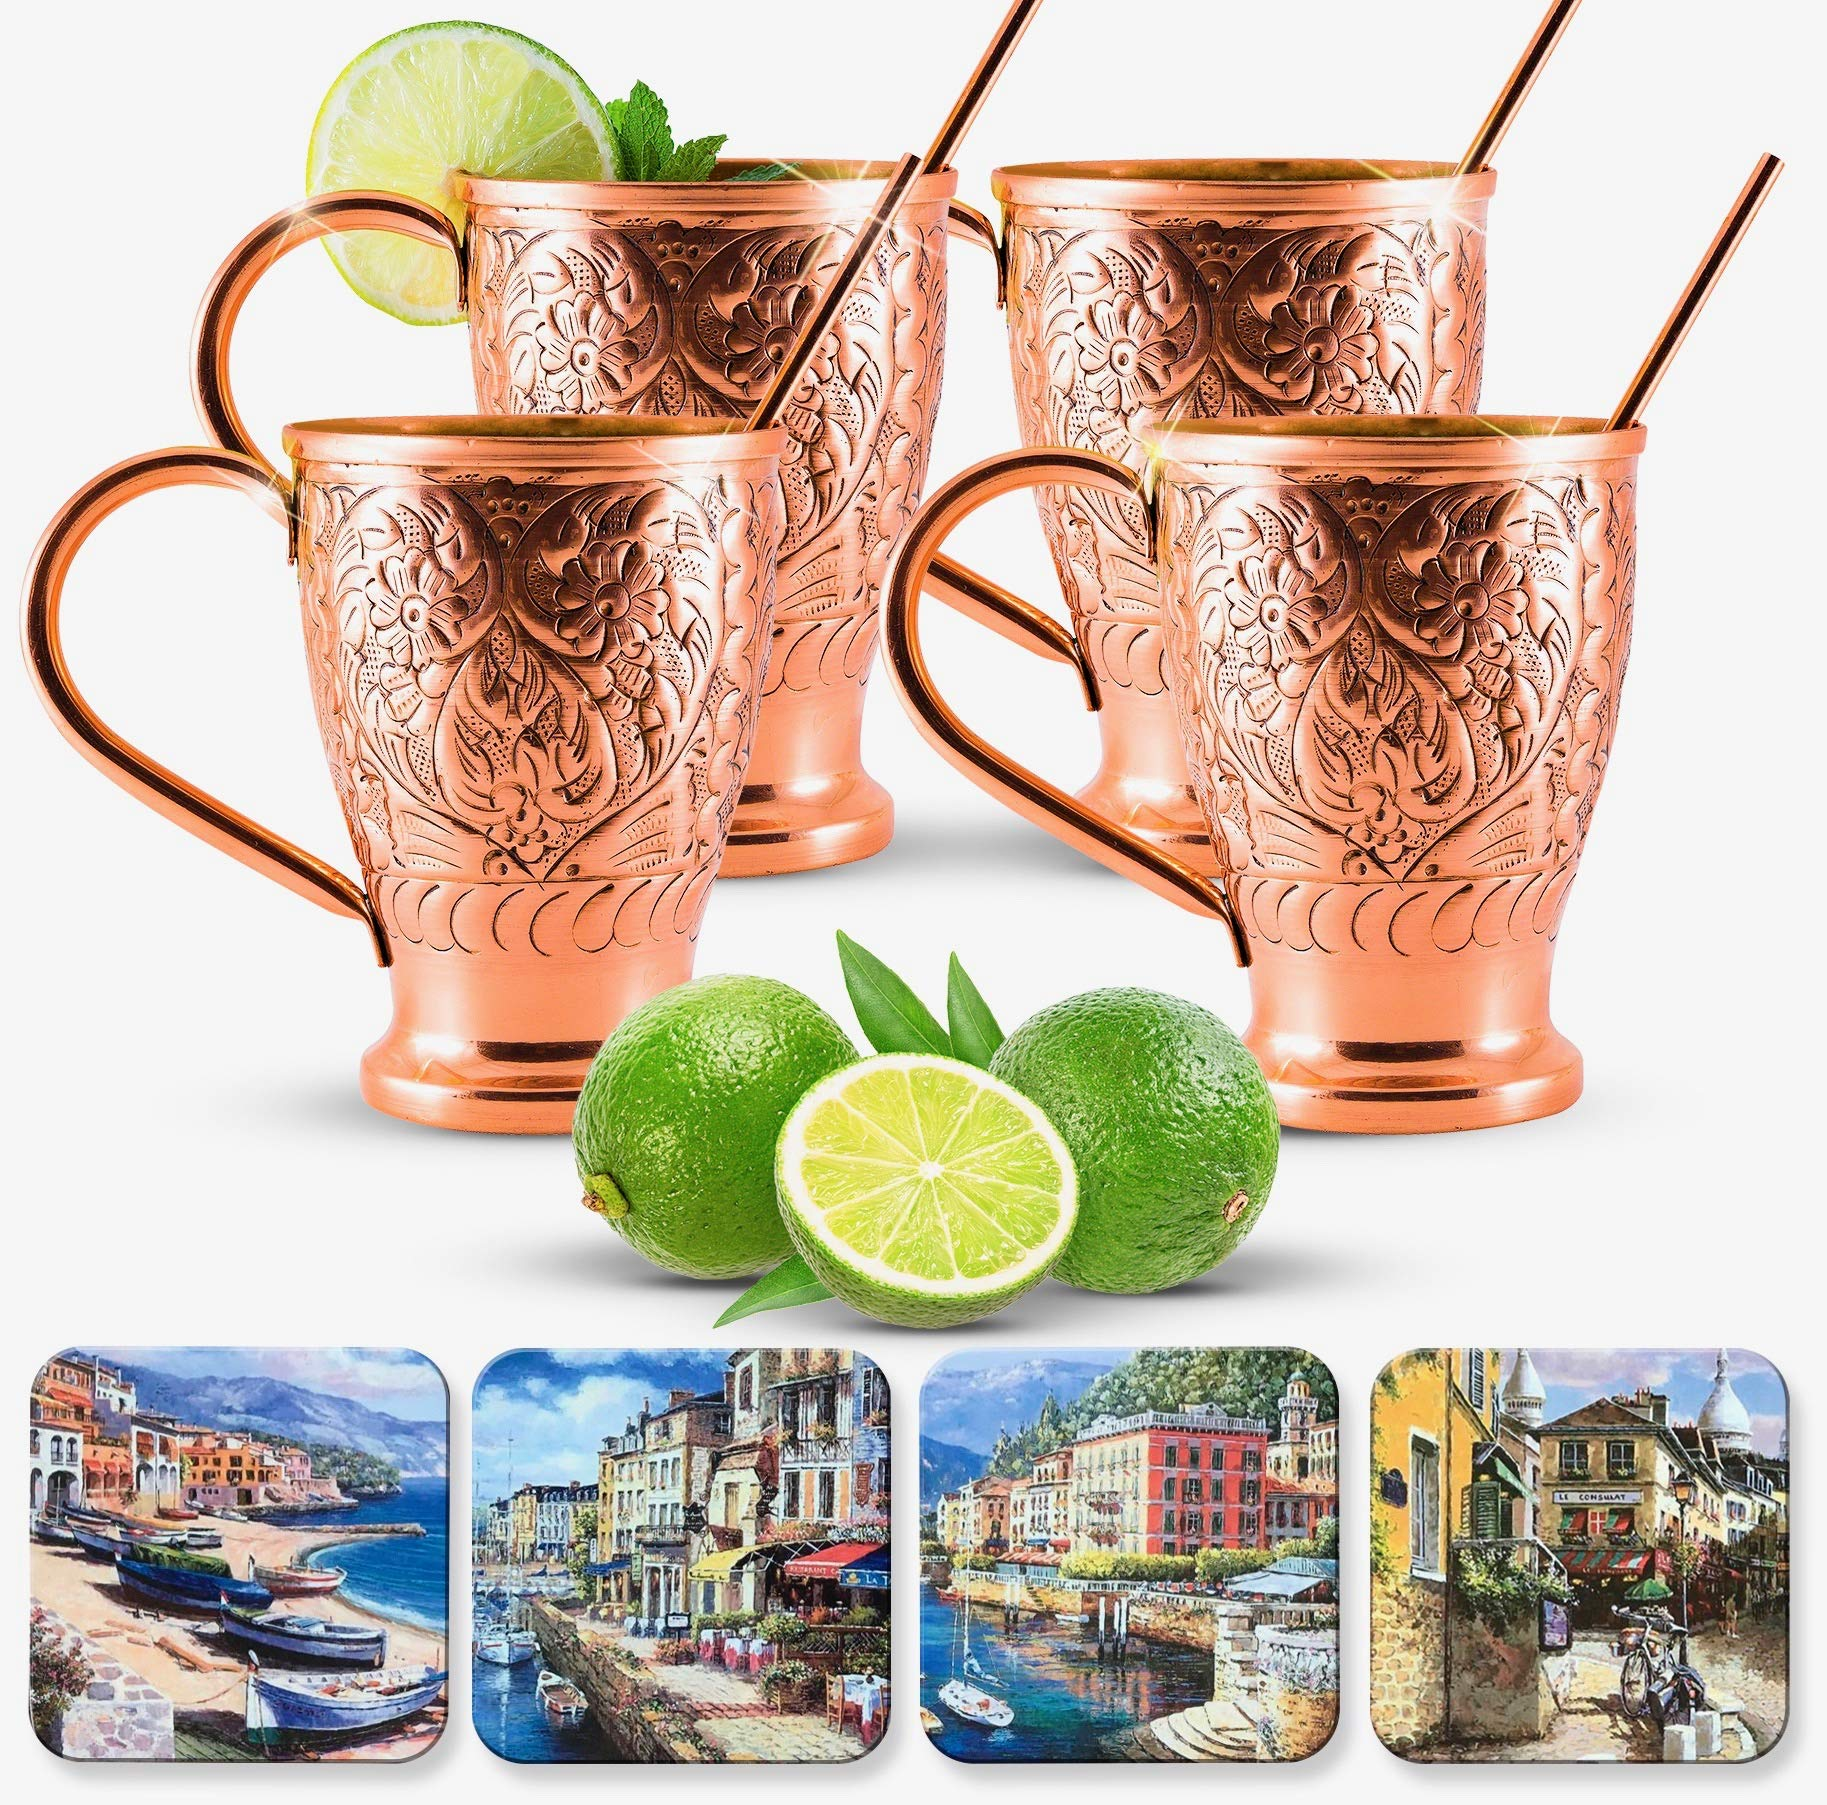 Moscow Mule Pure Copper Mugs | Stunning Embossed Gift Set of 4 Copper Cups | Bonus Cocktail Coasters & Straws/Stir Sticks | Kamojo Exclusive (Set of 4)